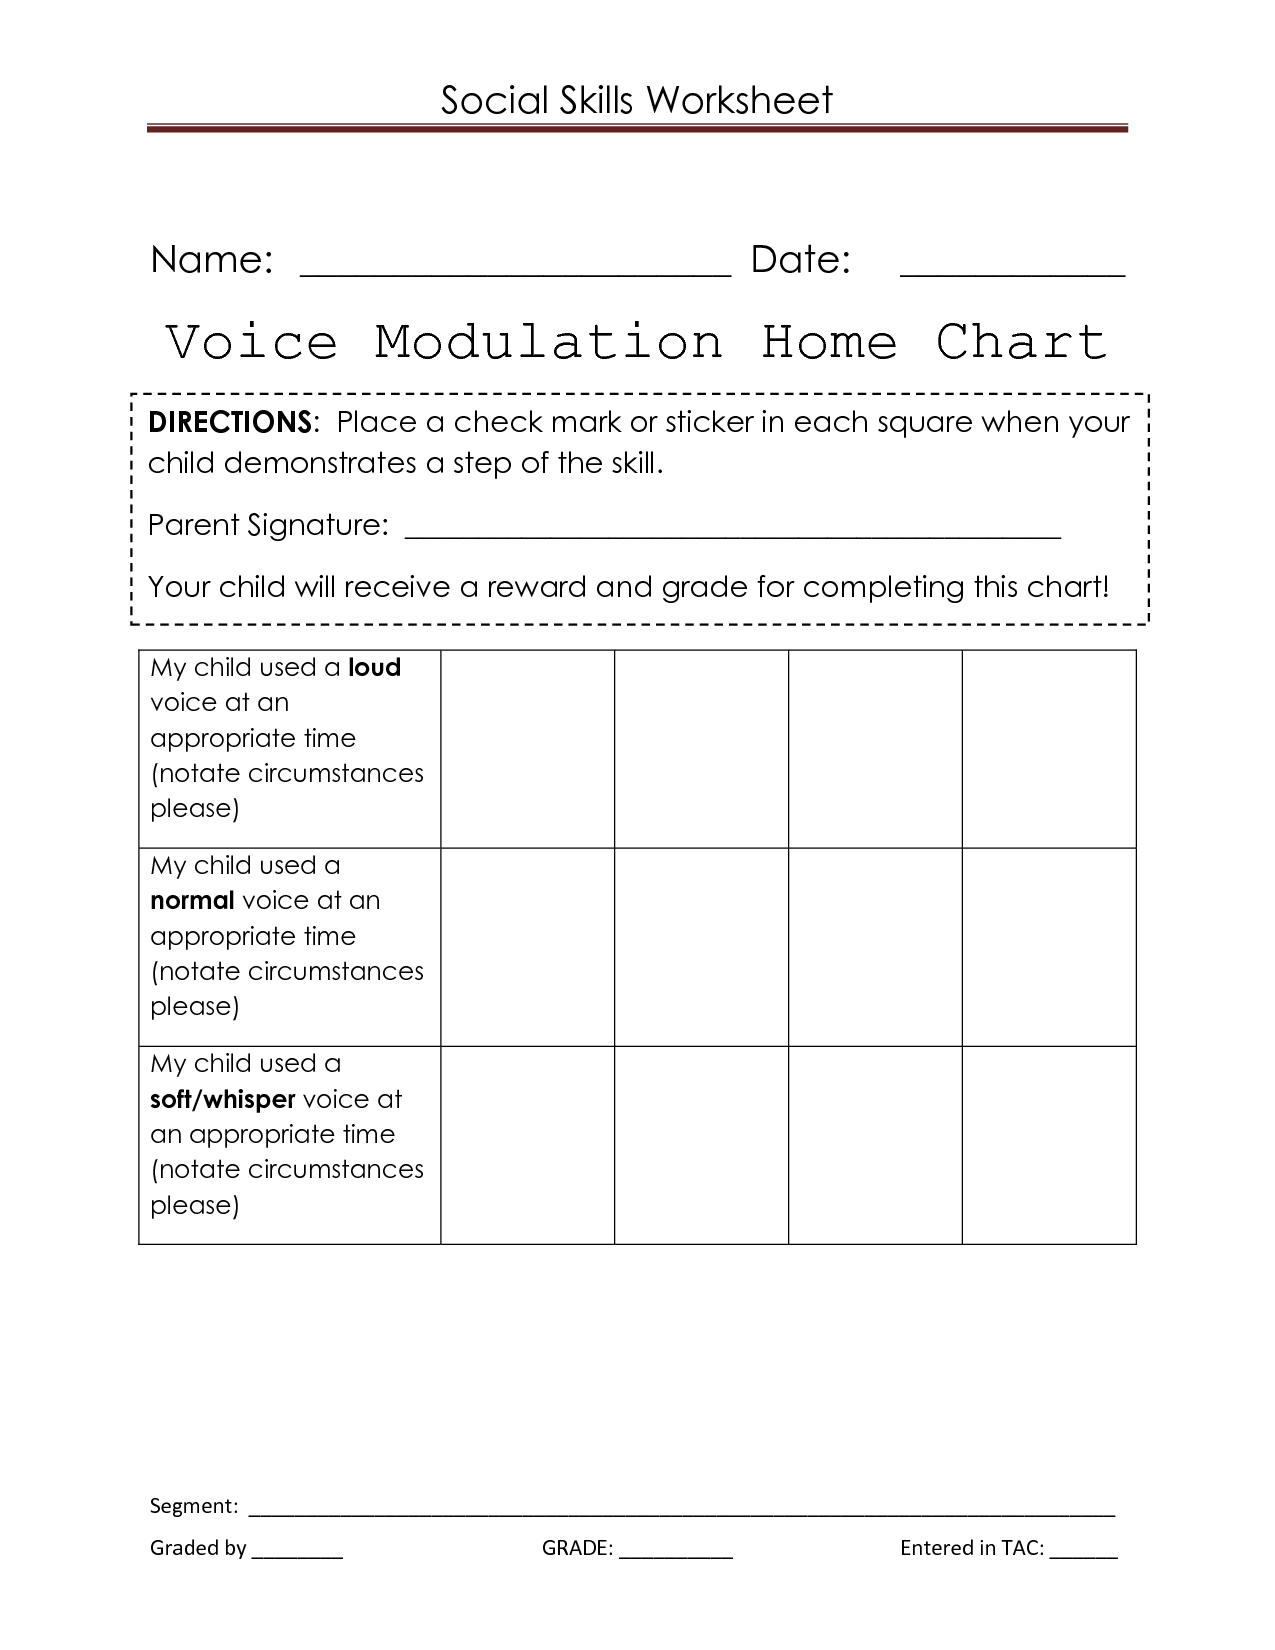 16 Best Images Of Social Skills Worksheets For Teenagers